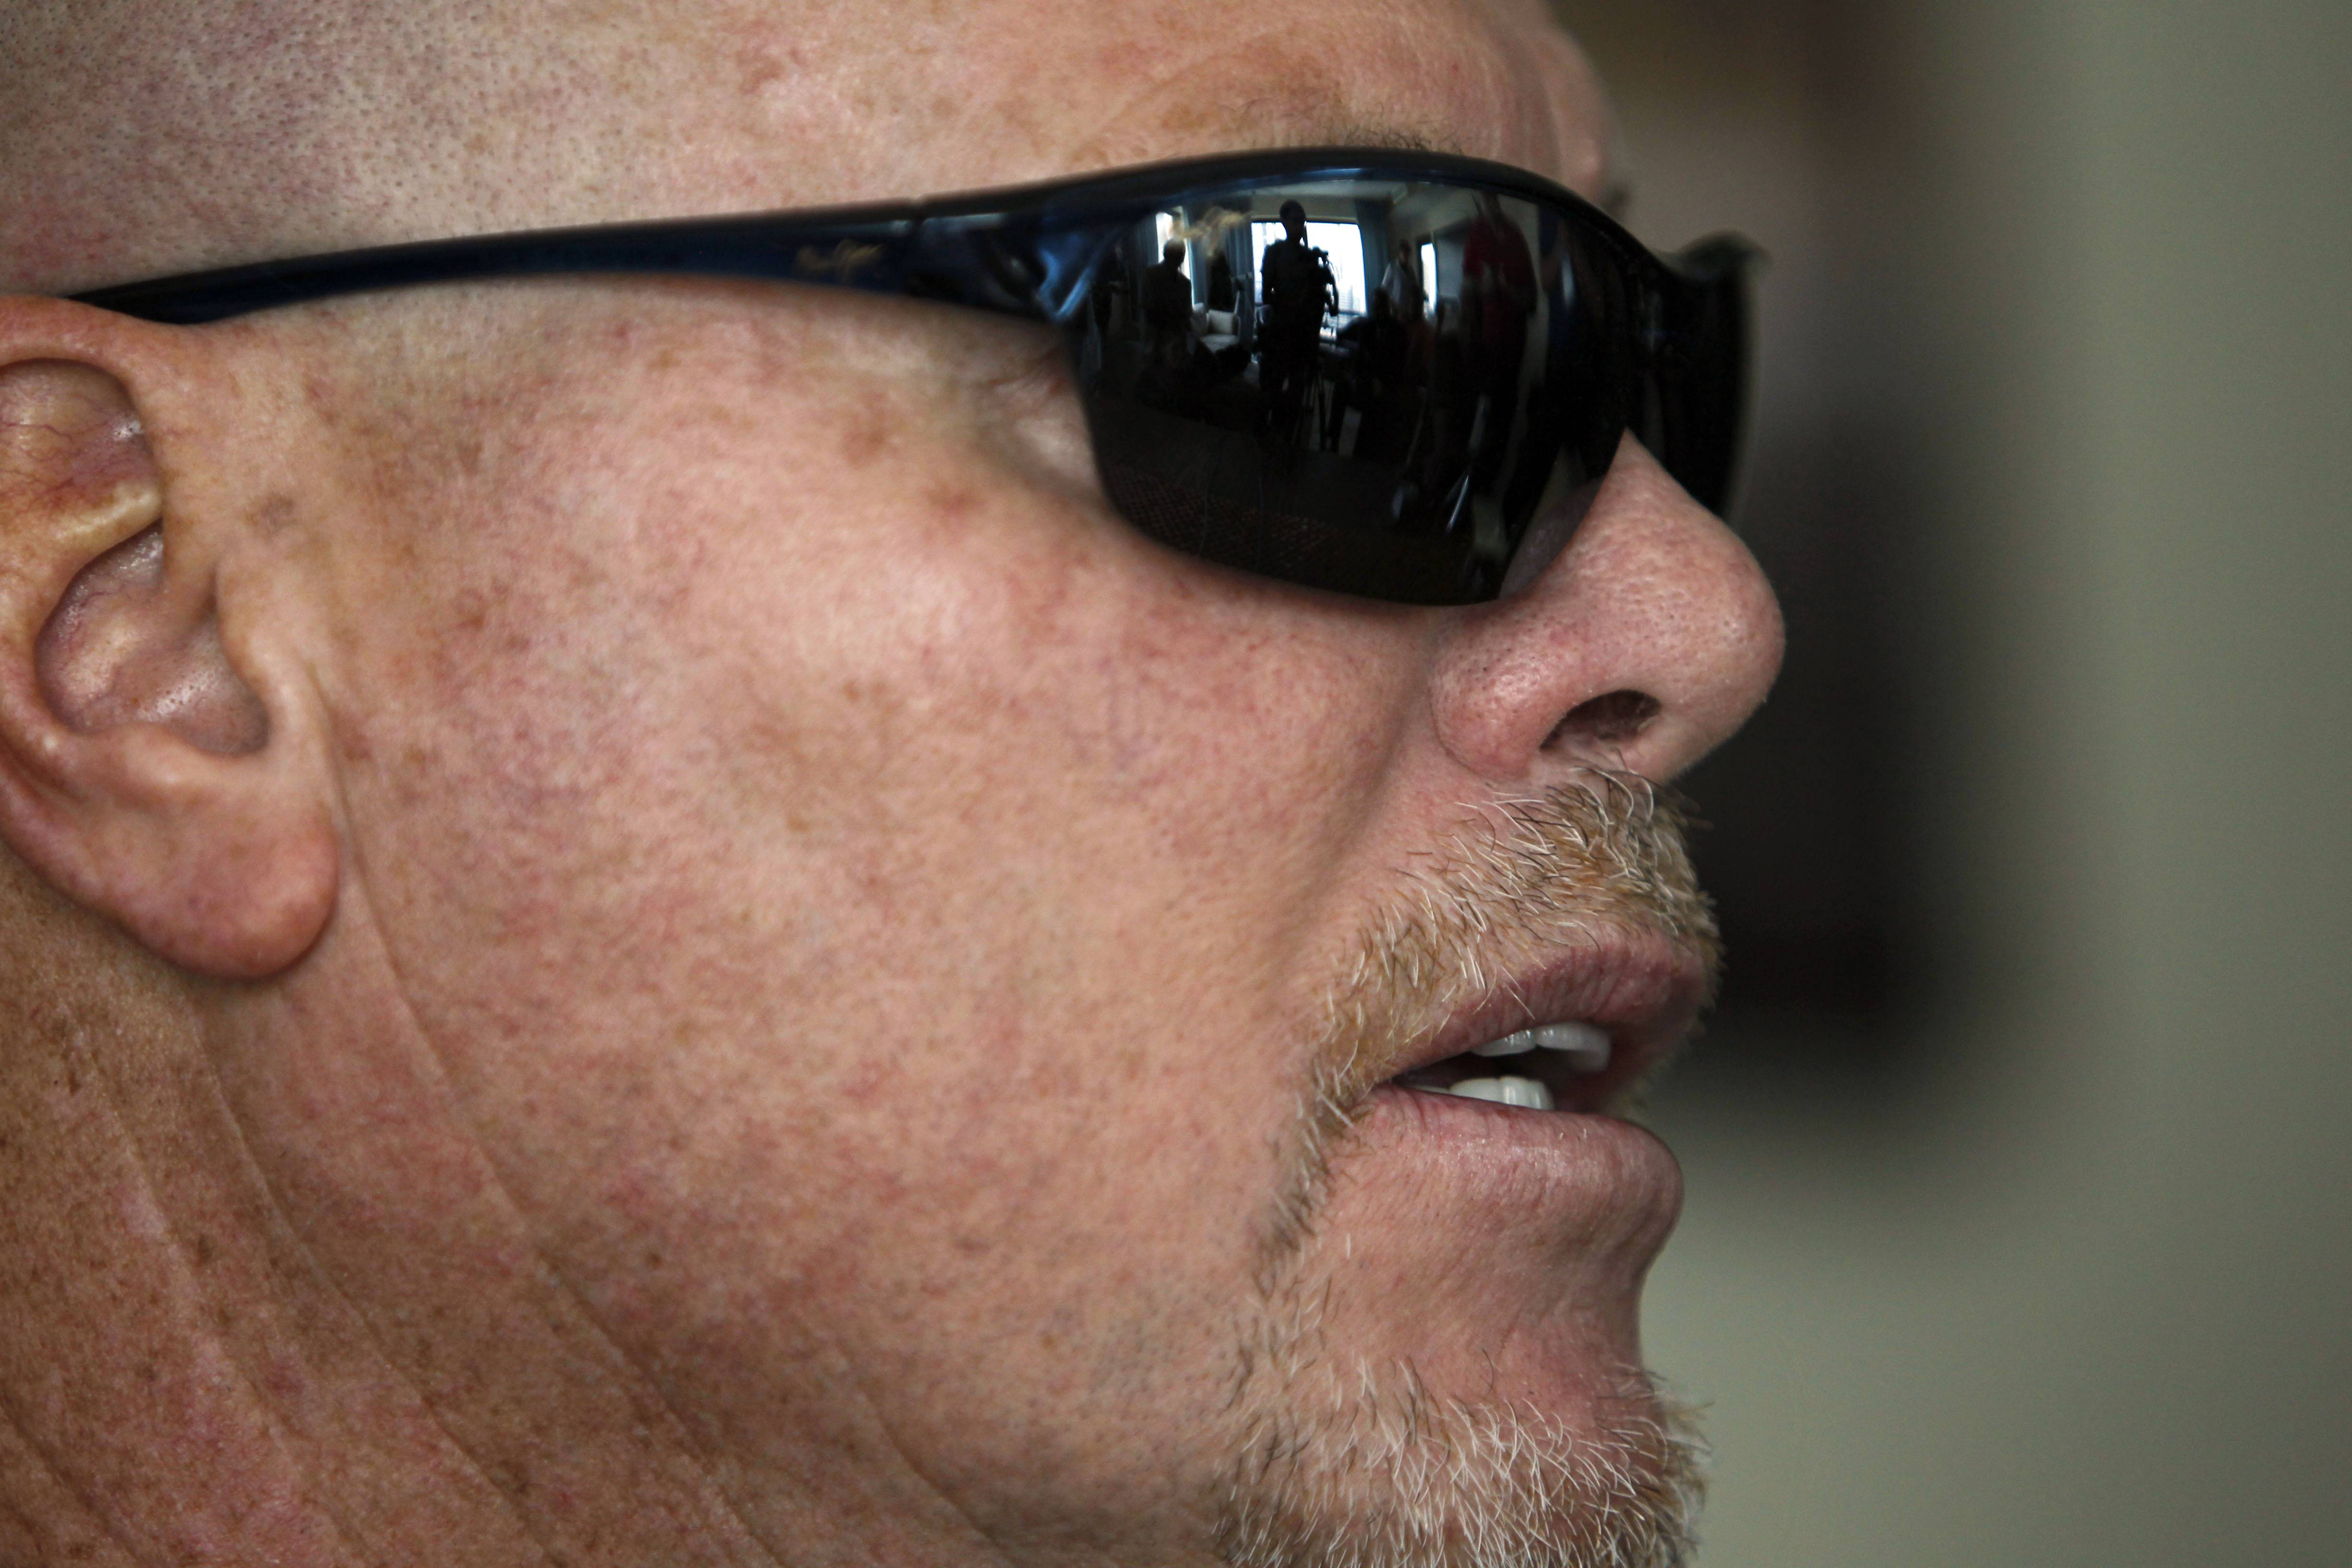 Former NFL football quarterback Jim McMahon speaks during a news conference Tuesday in Chicago. McMahon spoke of his ongoing battle with dementia that he believe is related to his years of hits he took while playing in the league. McMahon is part of a federal lawsuit filed in San Francisco accusing teams of illegally dispensing powerful narcotics and other drugs to keep players on the field without regard for their long-term health. He led the Chicago Bears to victory in the 1985 Super Bowl.